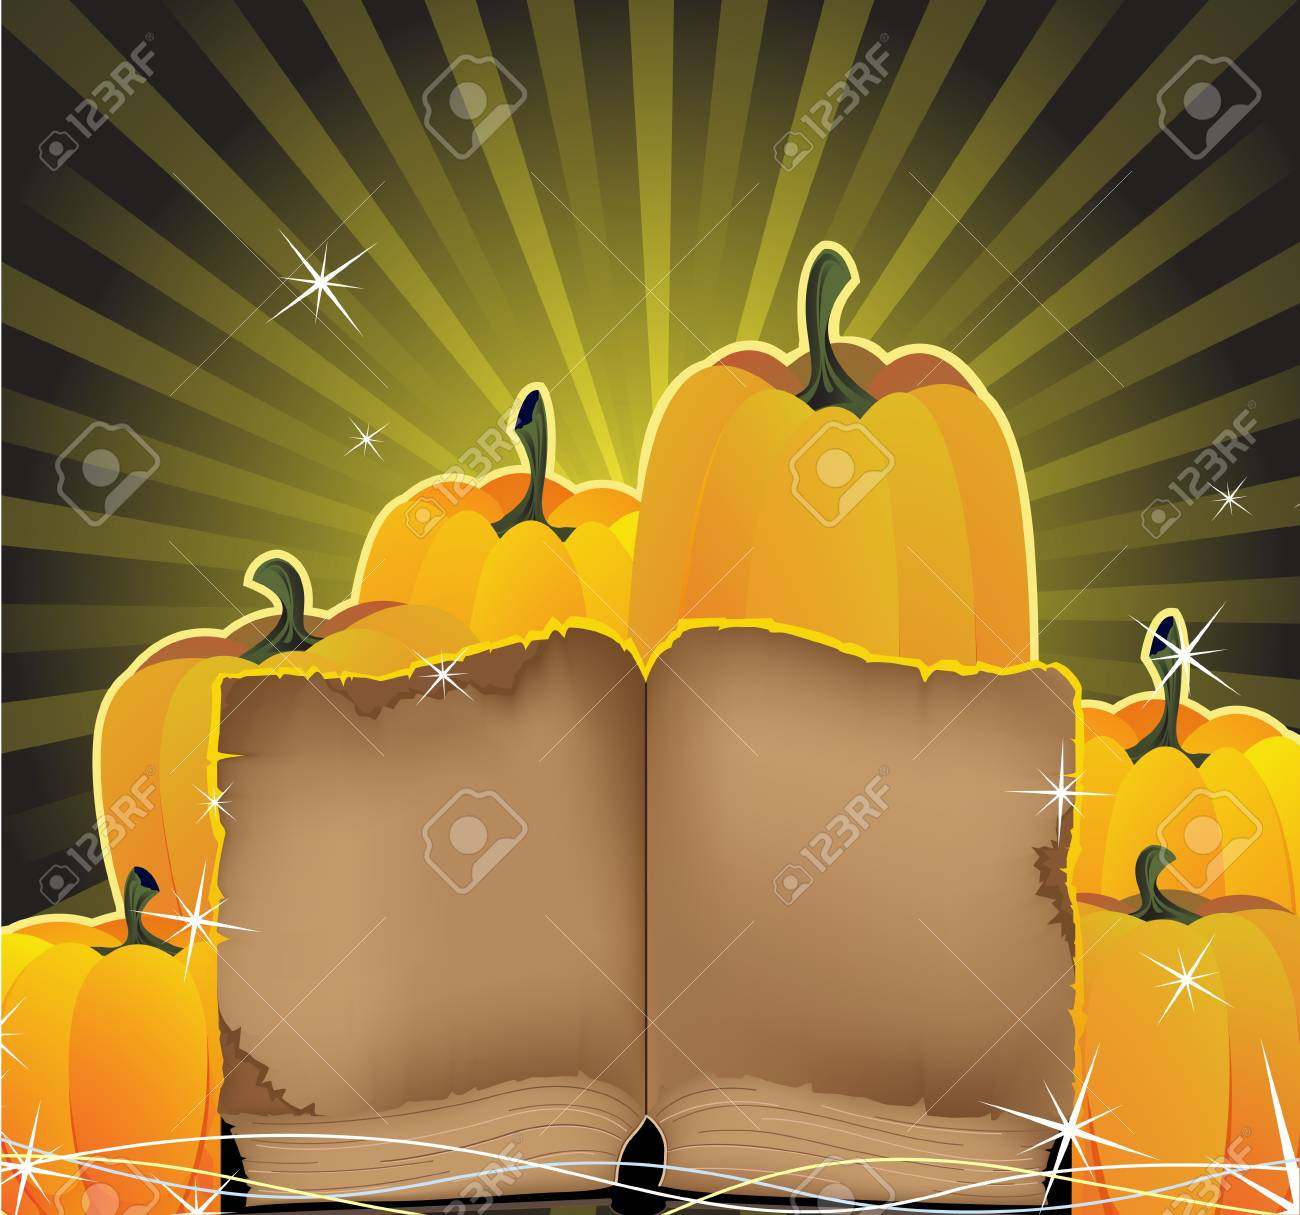 Ripe pumpkins and the ancient book on a golden shining background Stock Vector - 15094966